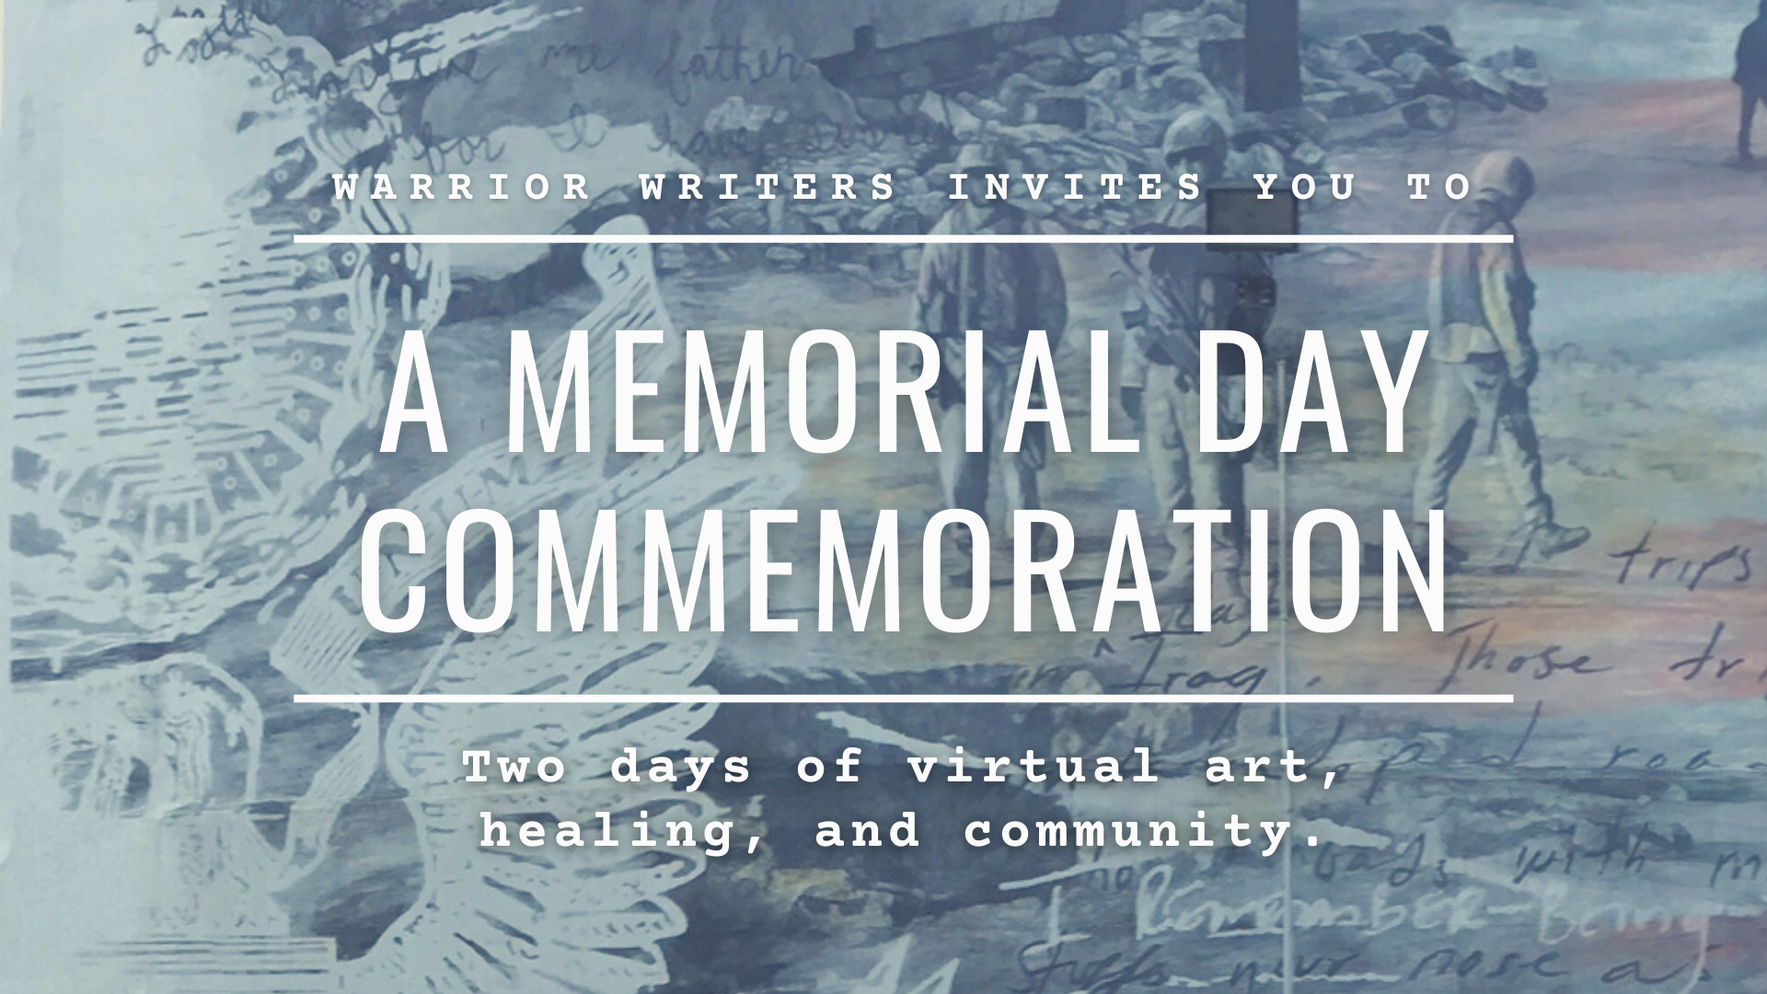 Warrior Writers Memorial Day Commemoration image